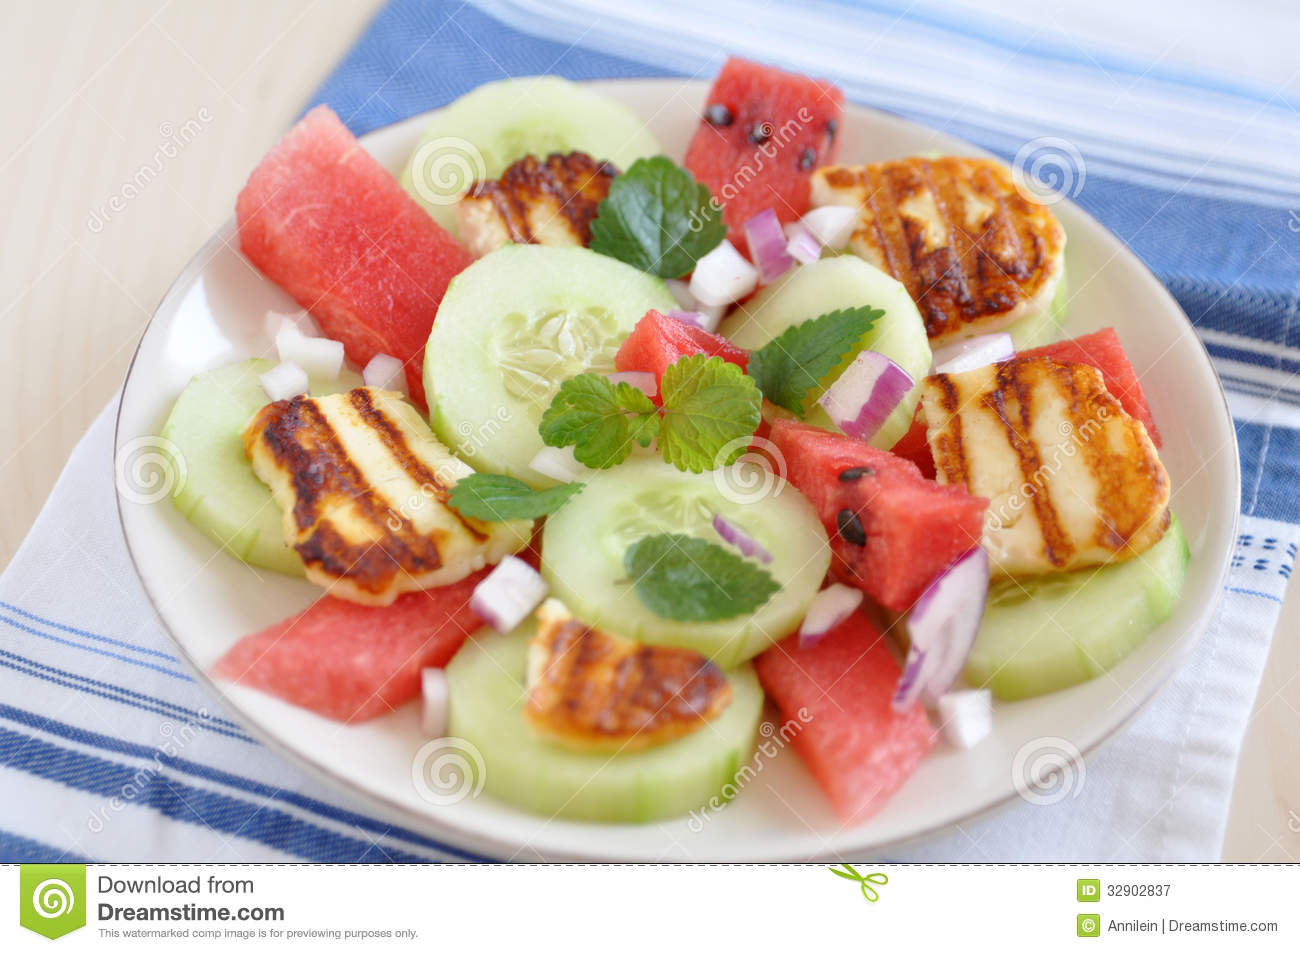 Royalty Free Stock Photography: Water Melon Salad with halloumi cheese